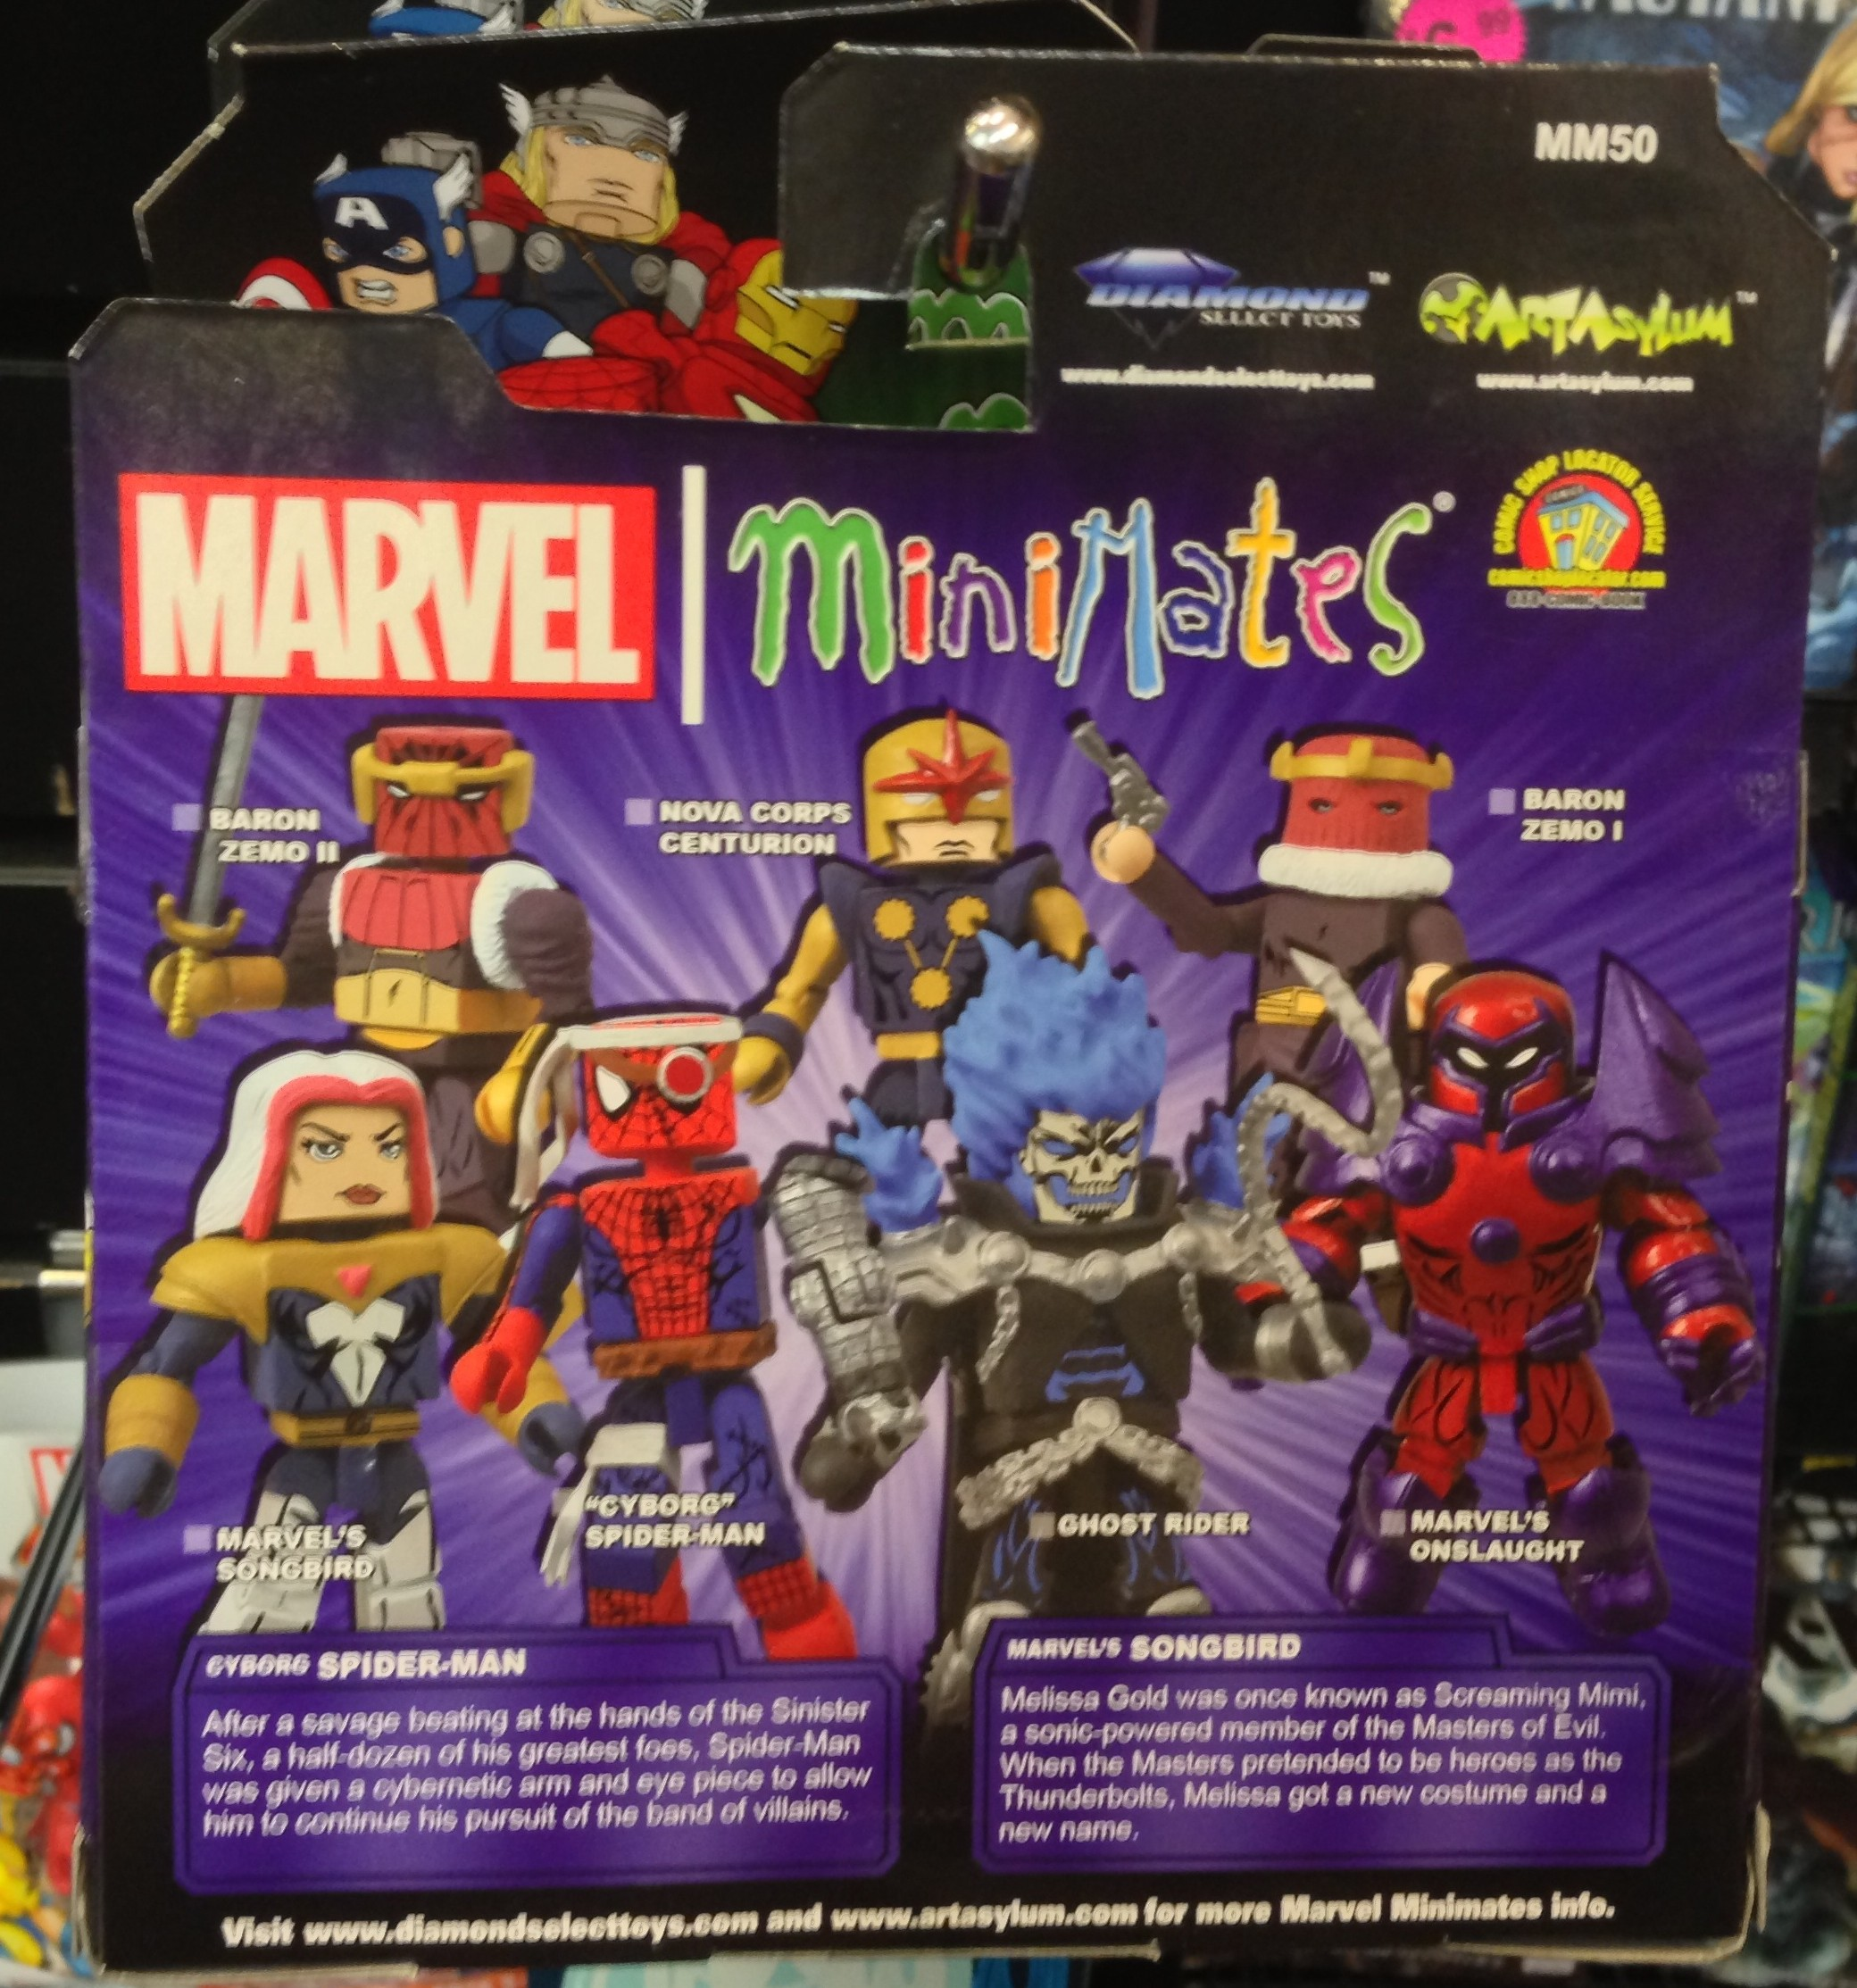 Marvel Minimates Series 50 Cyborg Spider-Man